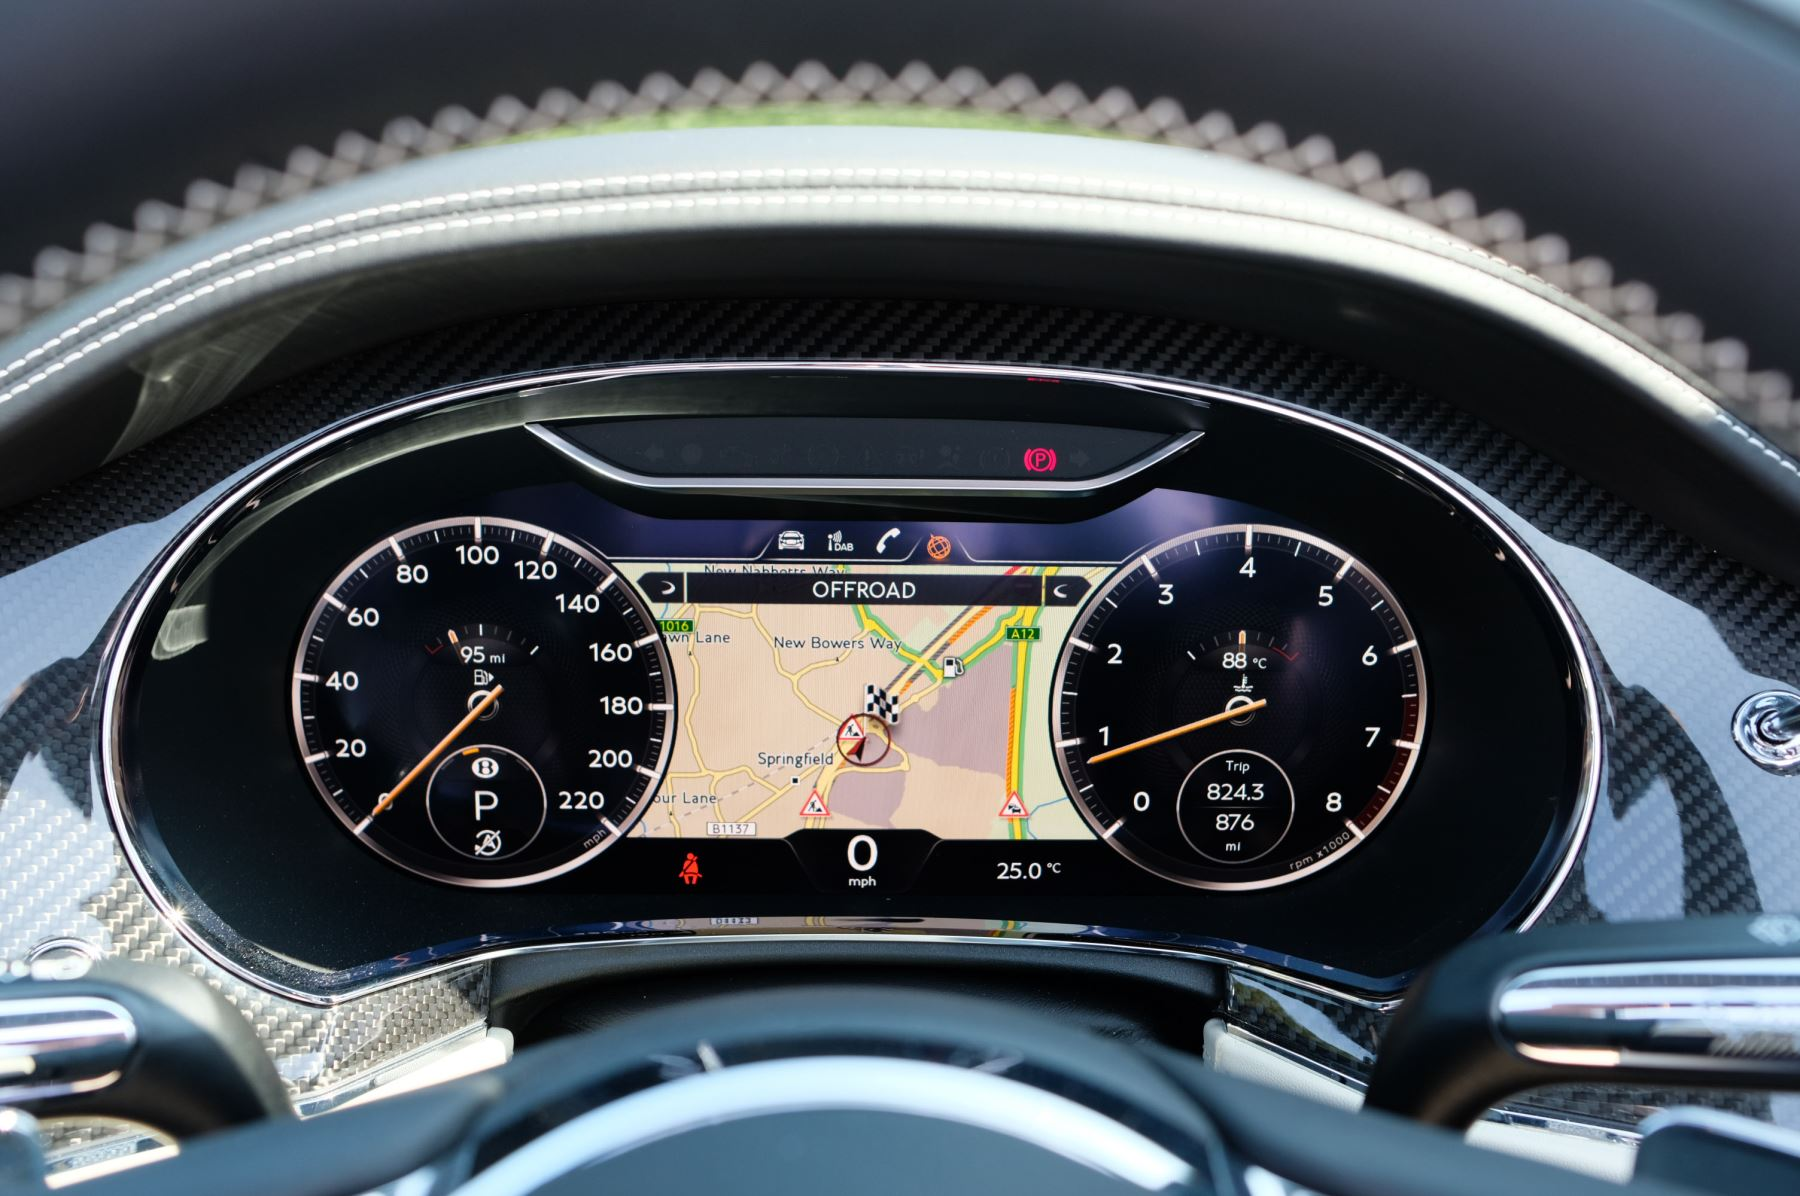 Bentley Continental GTC 4.0 V8 - Mulliner Driving Specification and Blackline Specification with 22 Inch Alloys image 16